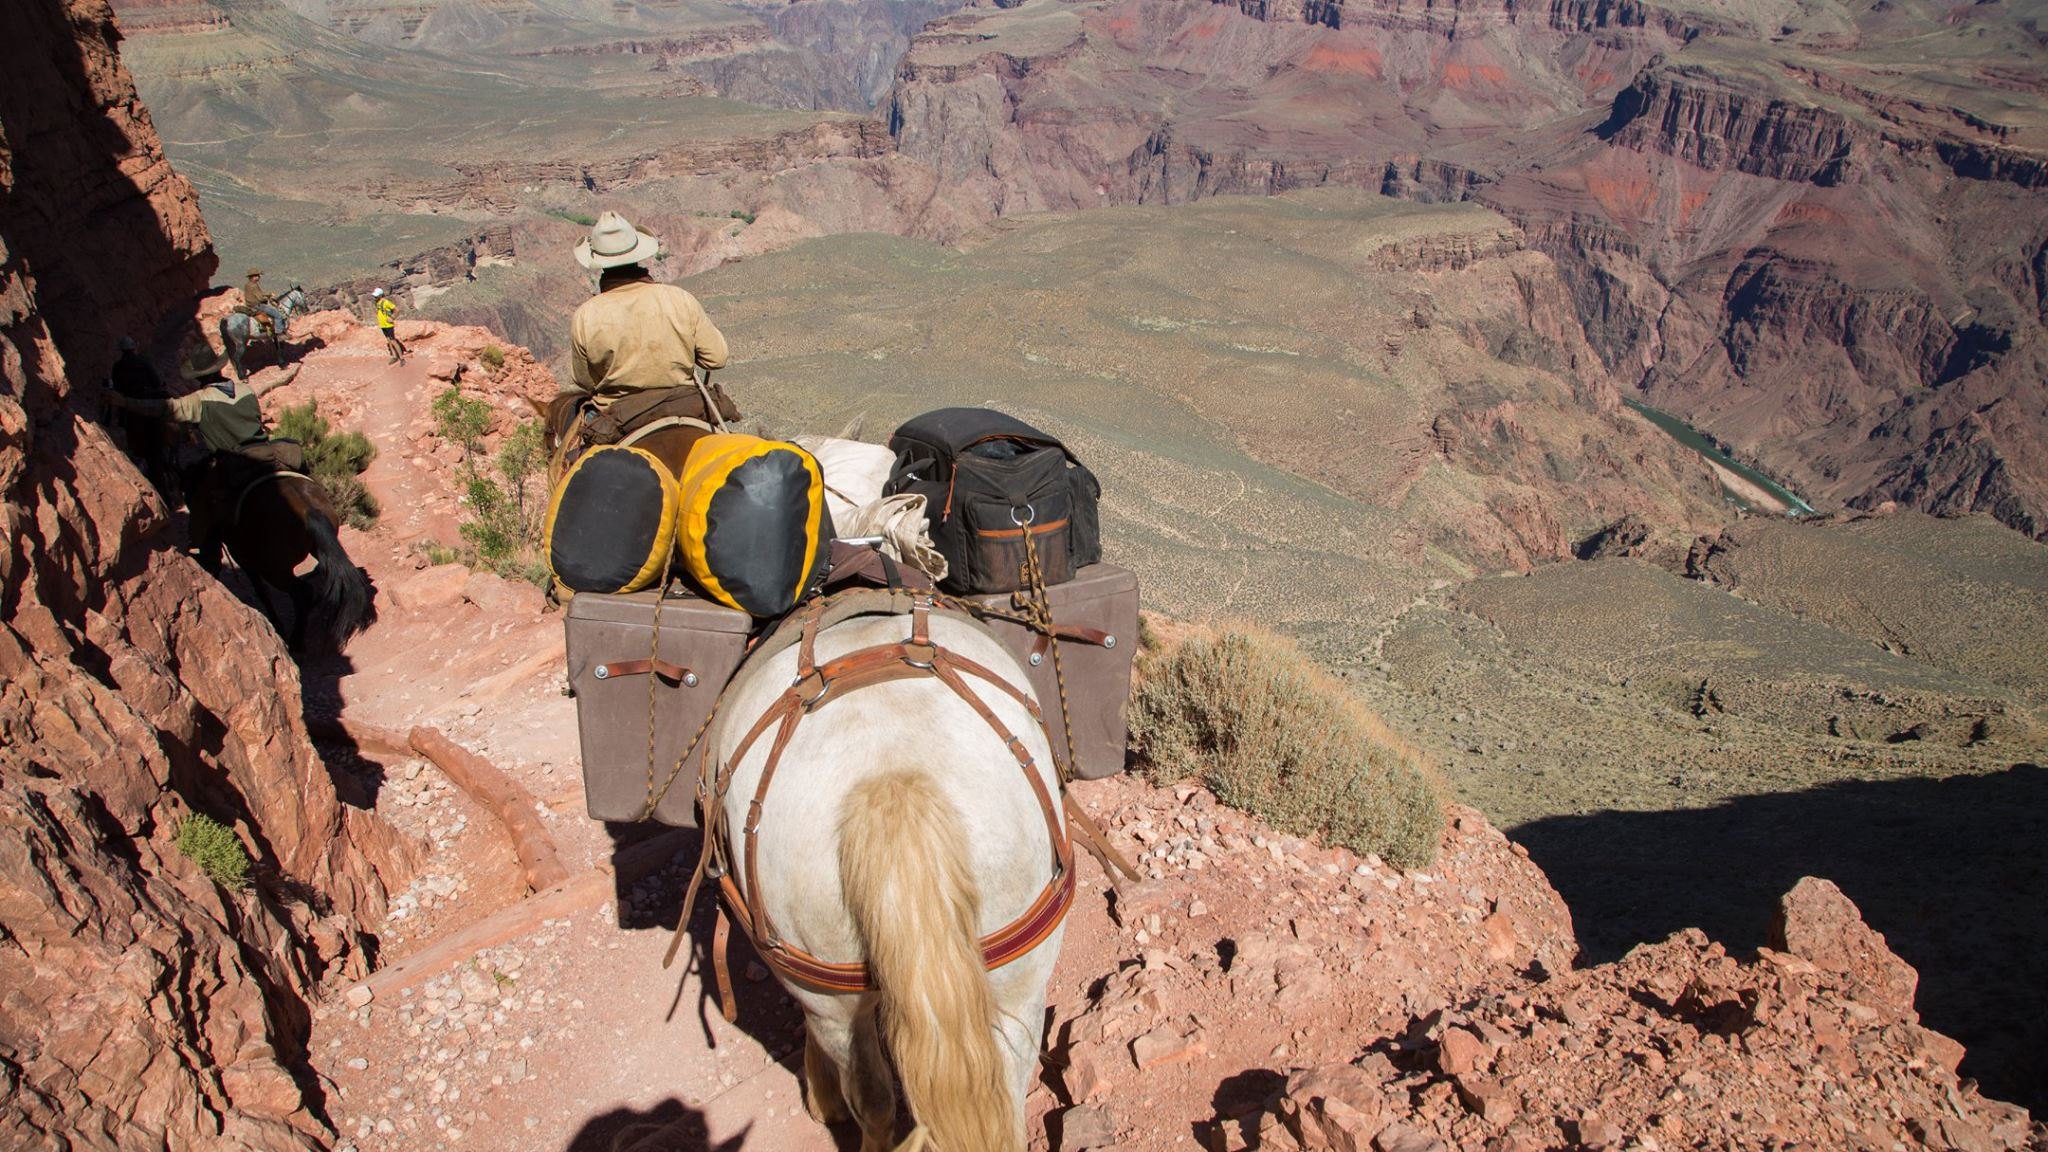 """Dropping into the """"Big Ditch"""" was exhilarating. We couldn't find anyone who'd taken horses rim to rim before. Our mustangs didn't miss a step (thank god) and we were very impressed with the trail quality. You should do it."""